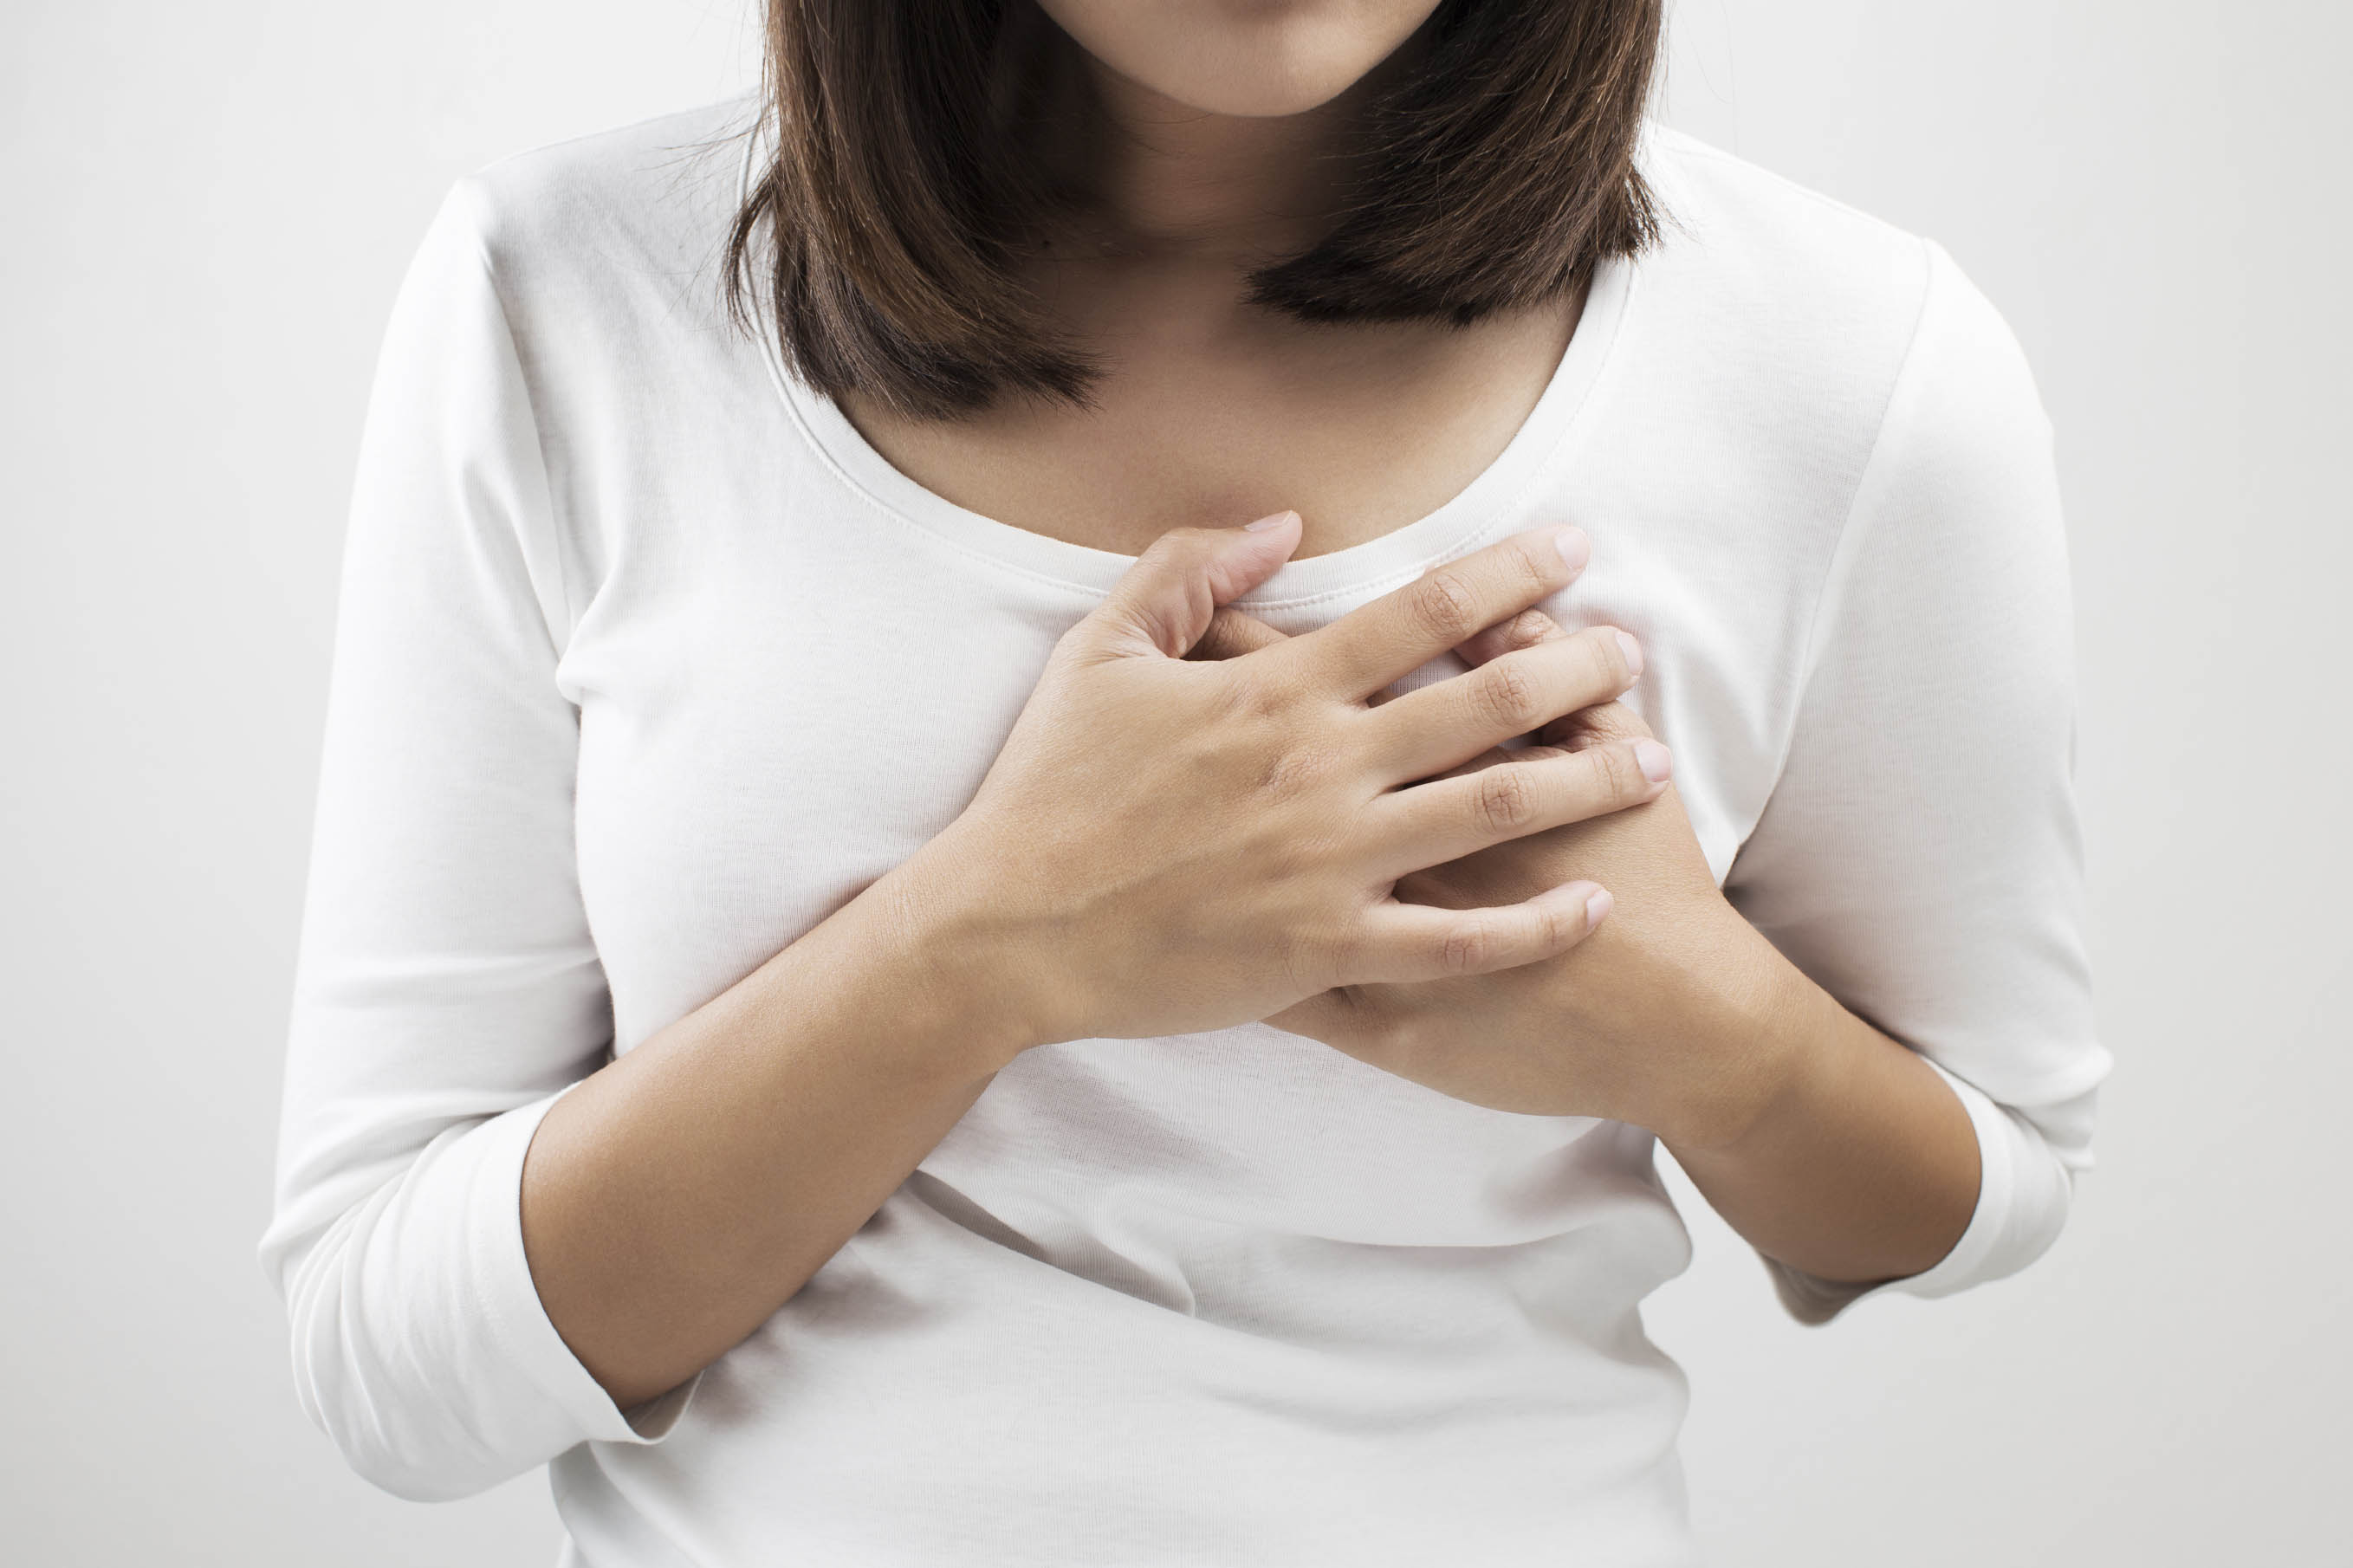 What causes severe breast tenderness